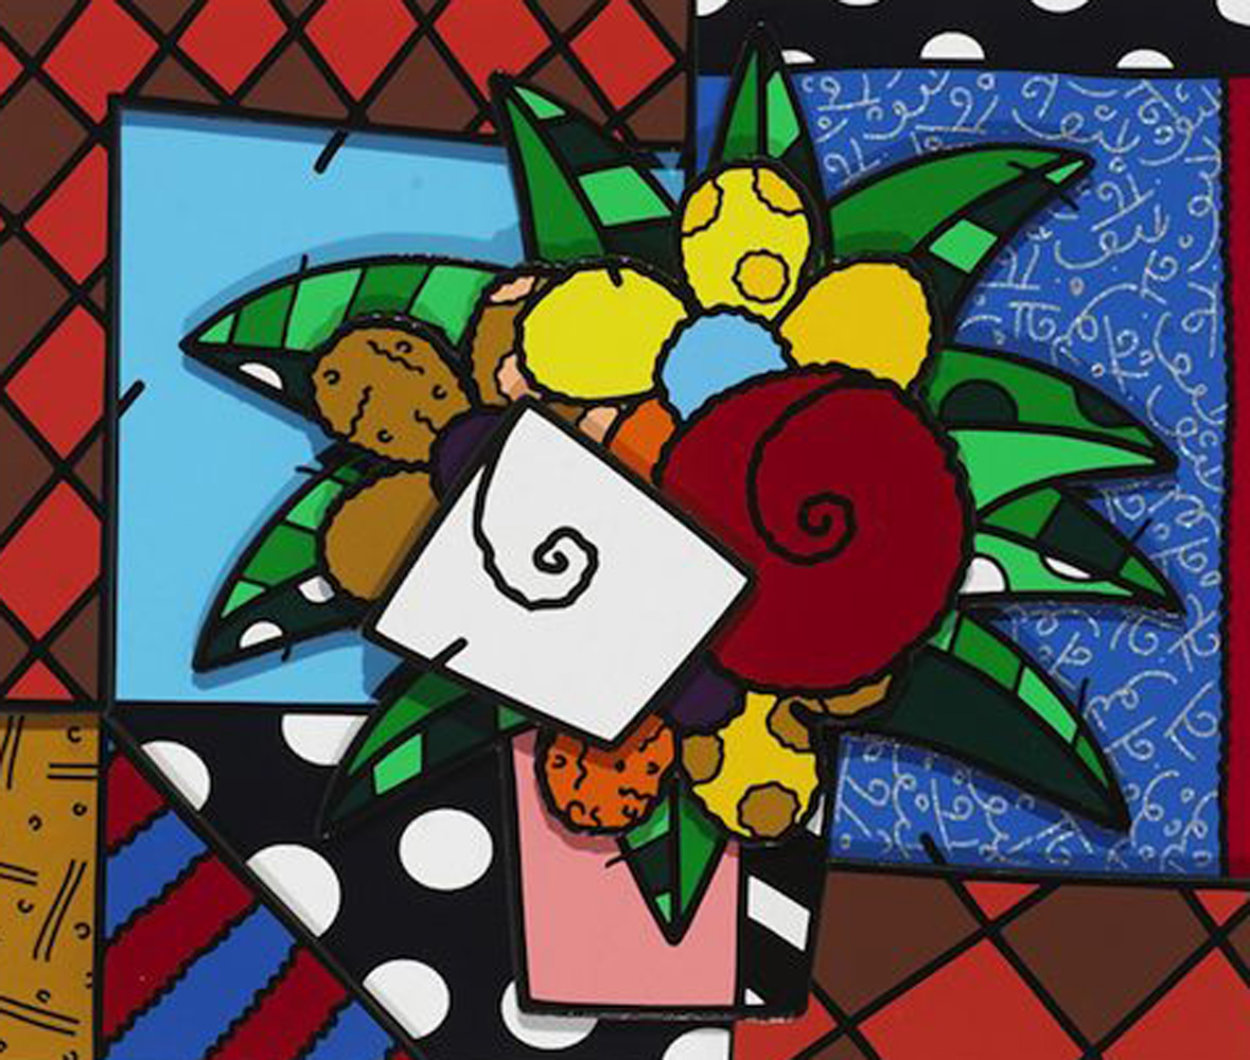 New Spring 2008 Limited Edition Print by Romero Britto